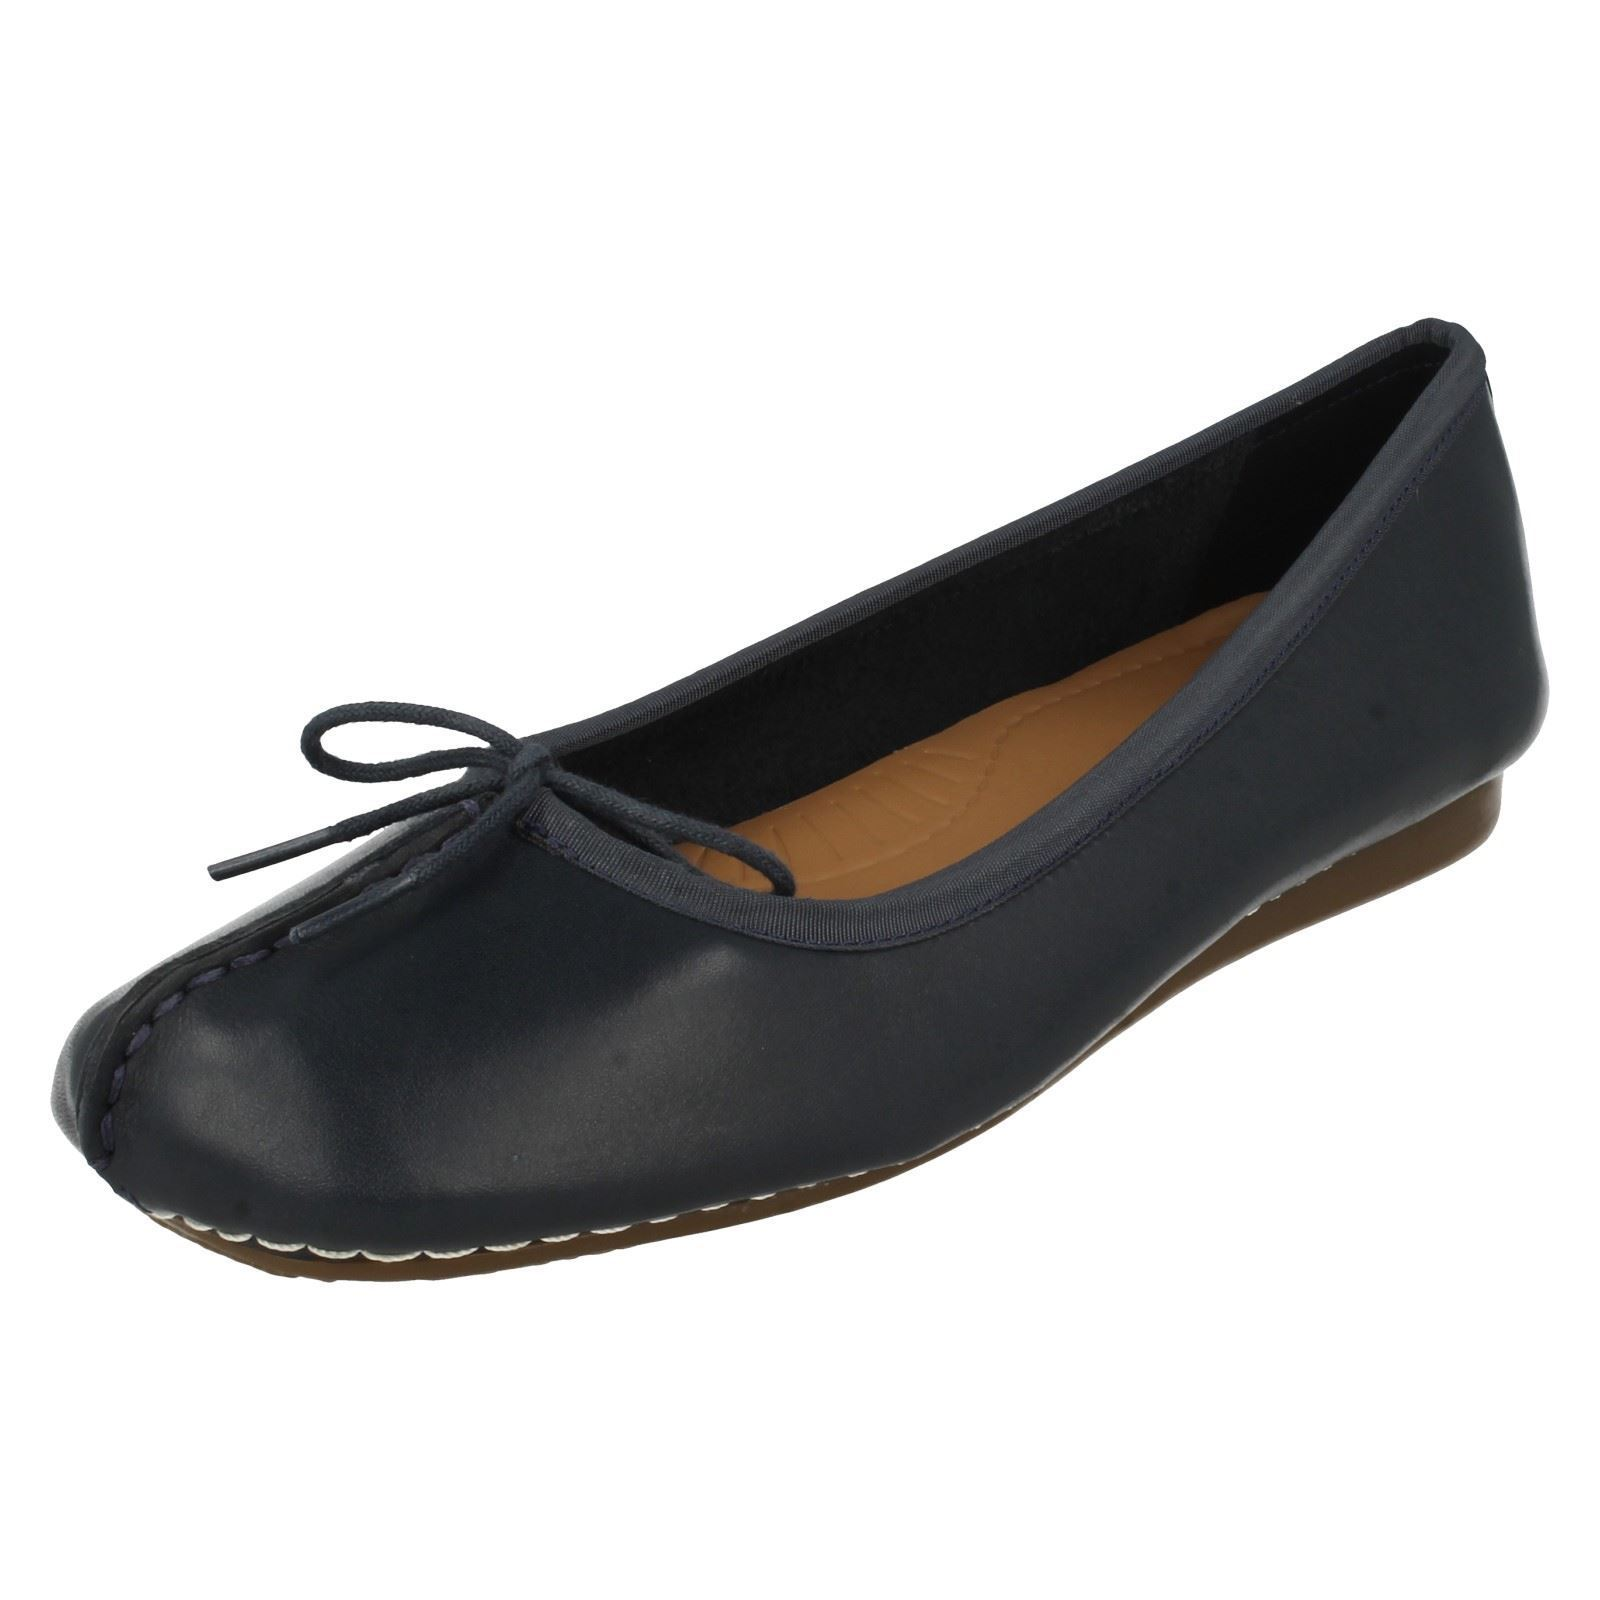 Clarks E Fitting Shoes